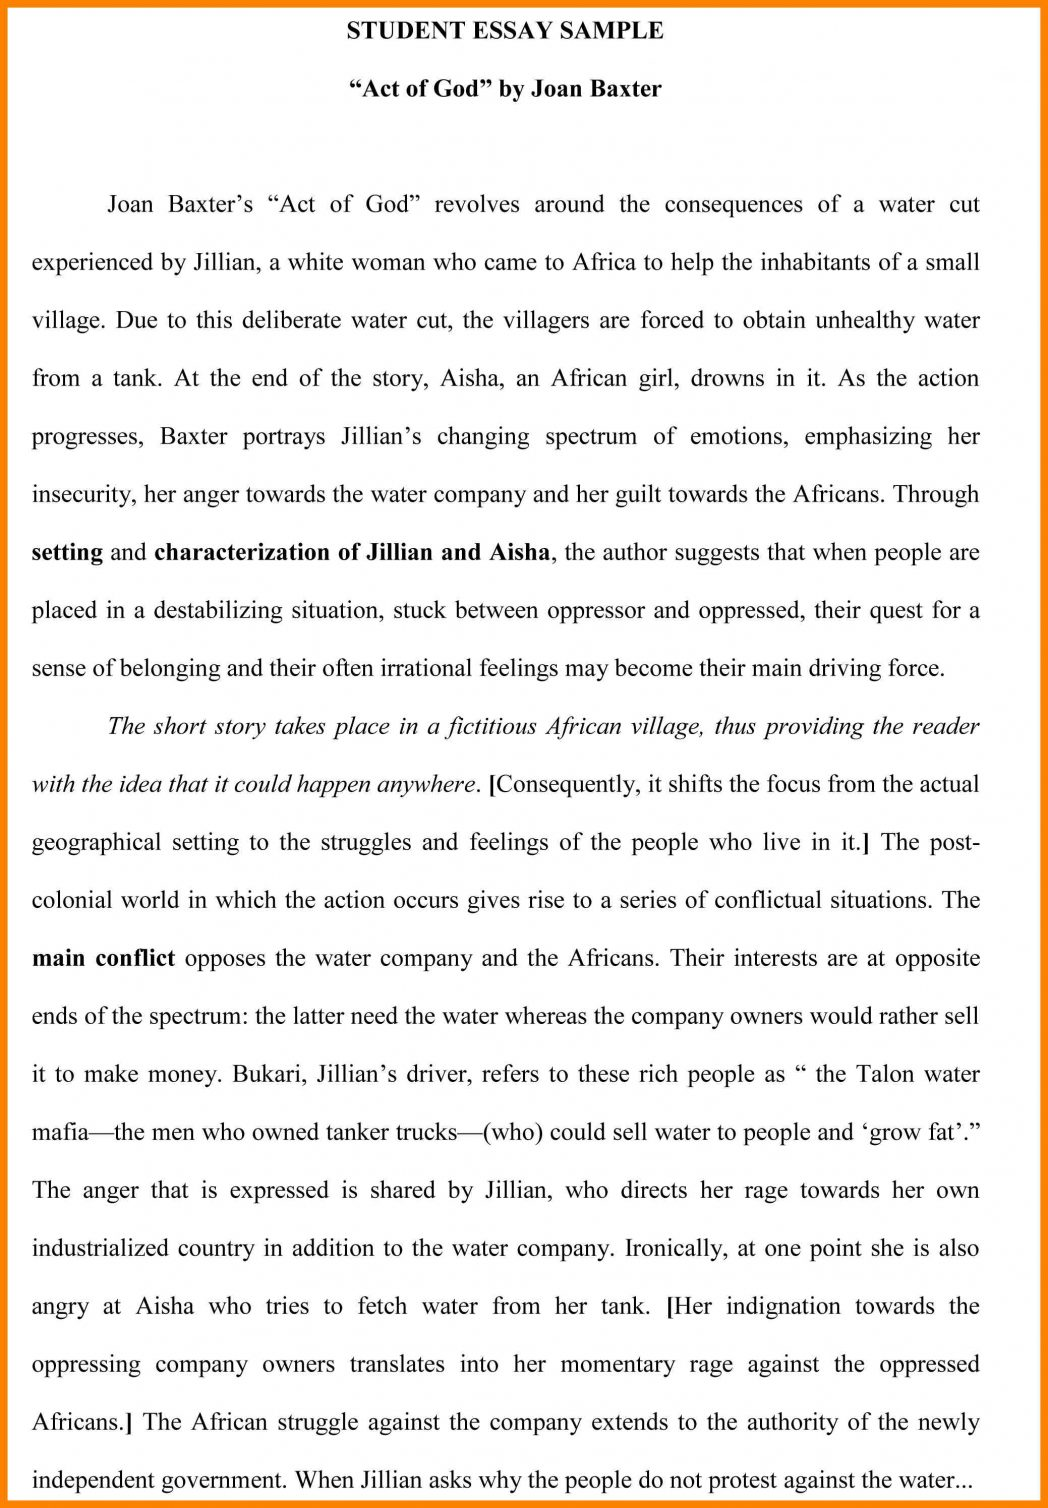 003 Examples Of Process Essays Pdf Essay Example College St Paper Sample Samples Ielts Topics How To Bake Cake Processchronological 1048x1508 Exceptional Do A Start Off You Write Analysis Full